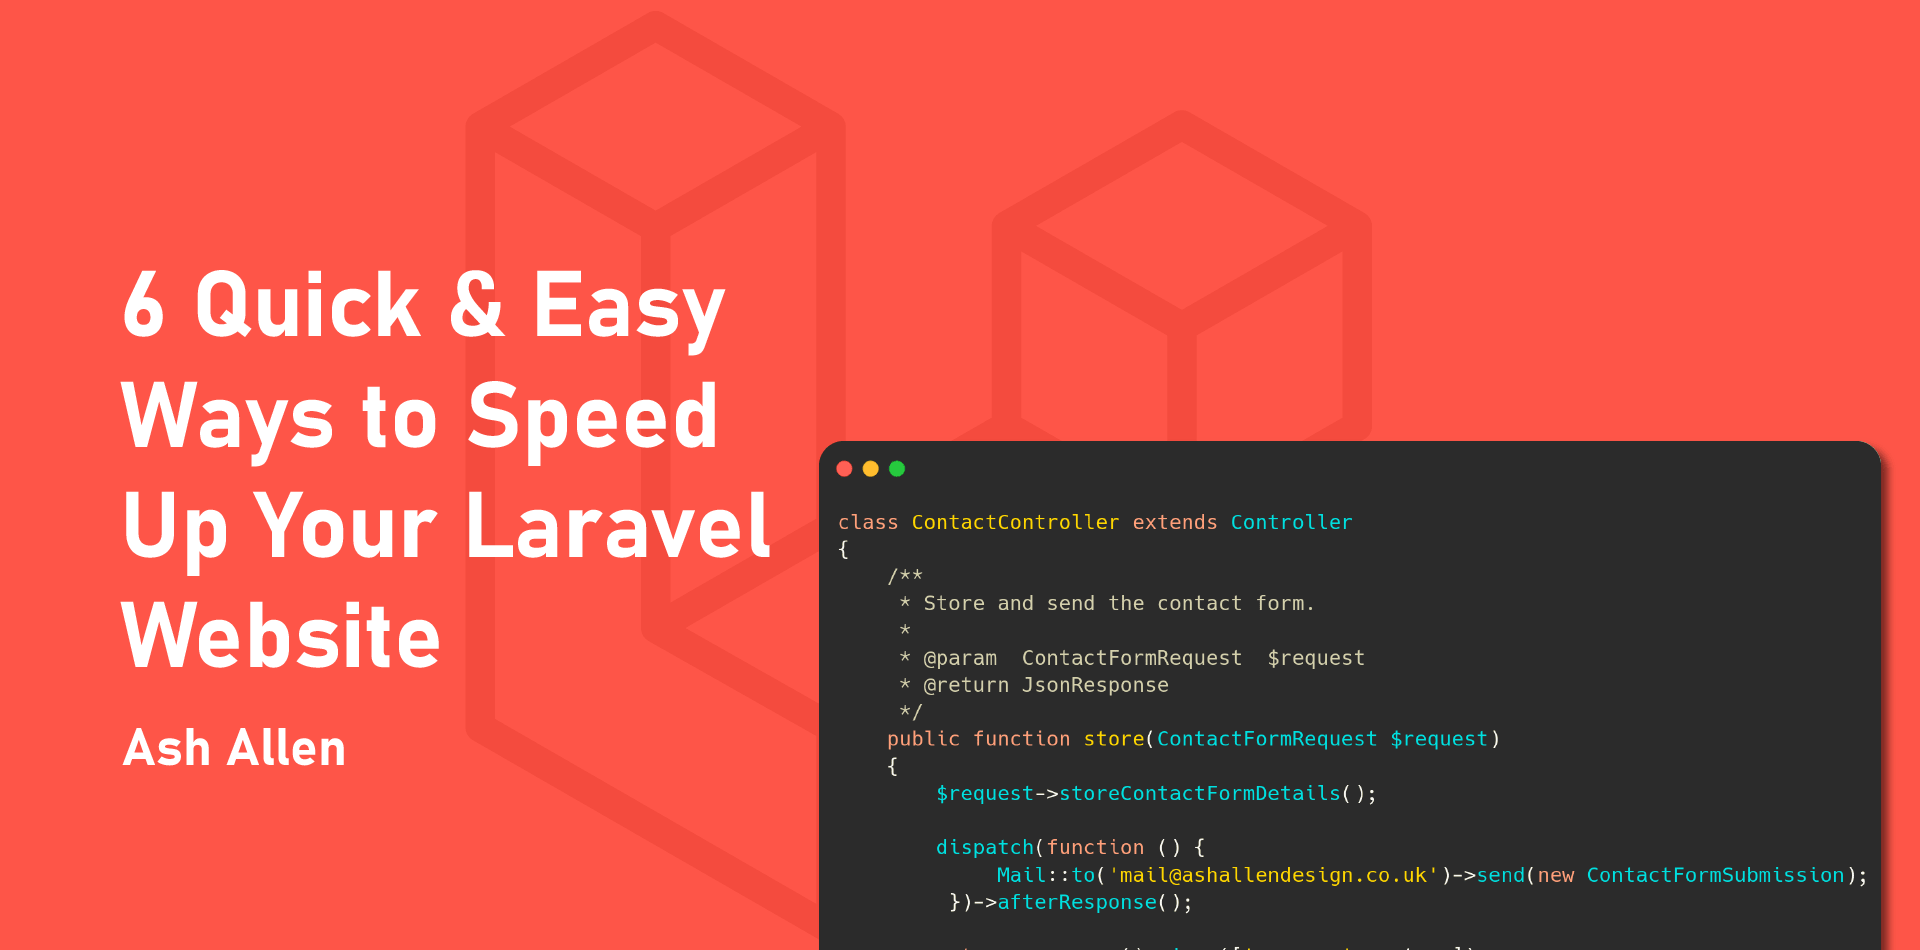 Learn 6 easy ways that you can improve your Laravel website's performance and speed. By using these tips, you'll be able to provide a better customer experience.